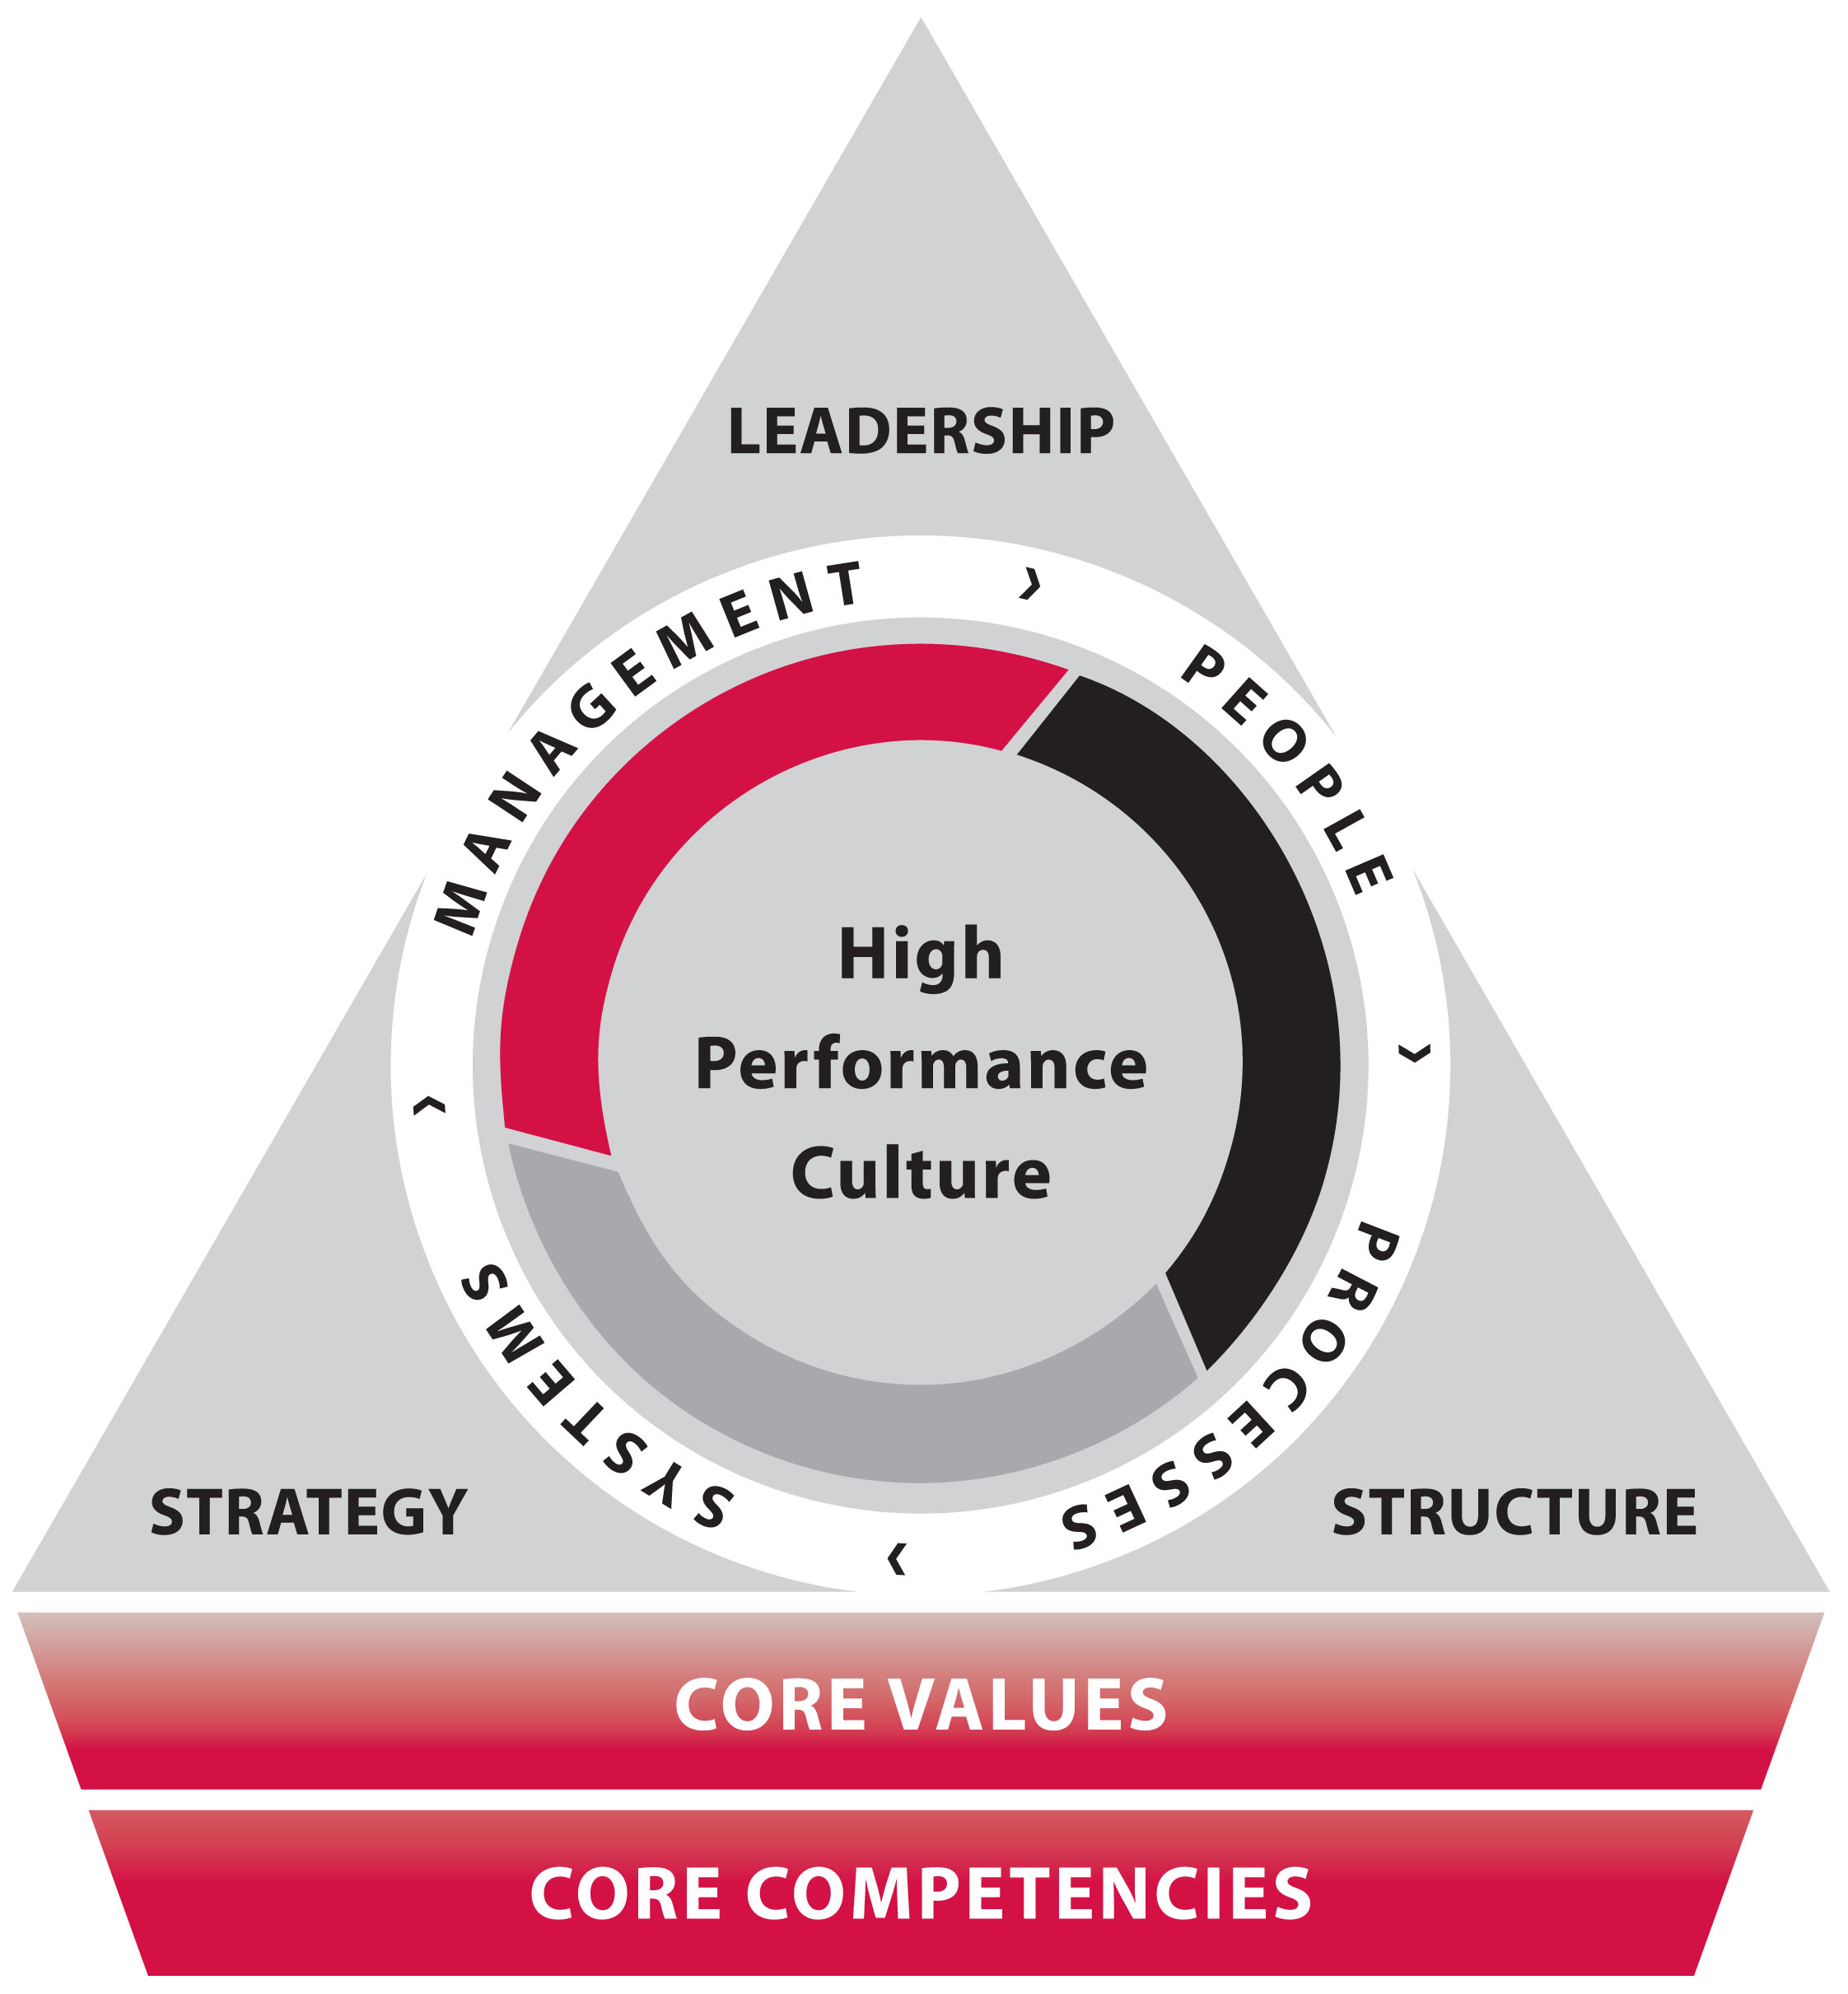 managing high performance teams applying and Teams drive organizational success, though developing and leading high-performance teams is one of the most complex tasks facing any leader in the current competitive work environment cohesiveness is the key factor in implementing effective, high-performance teams.